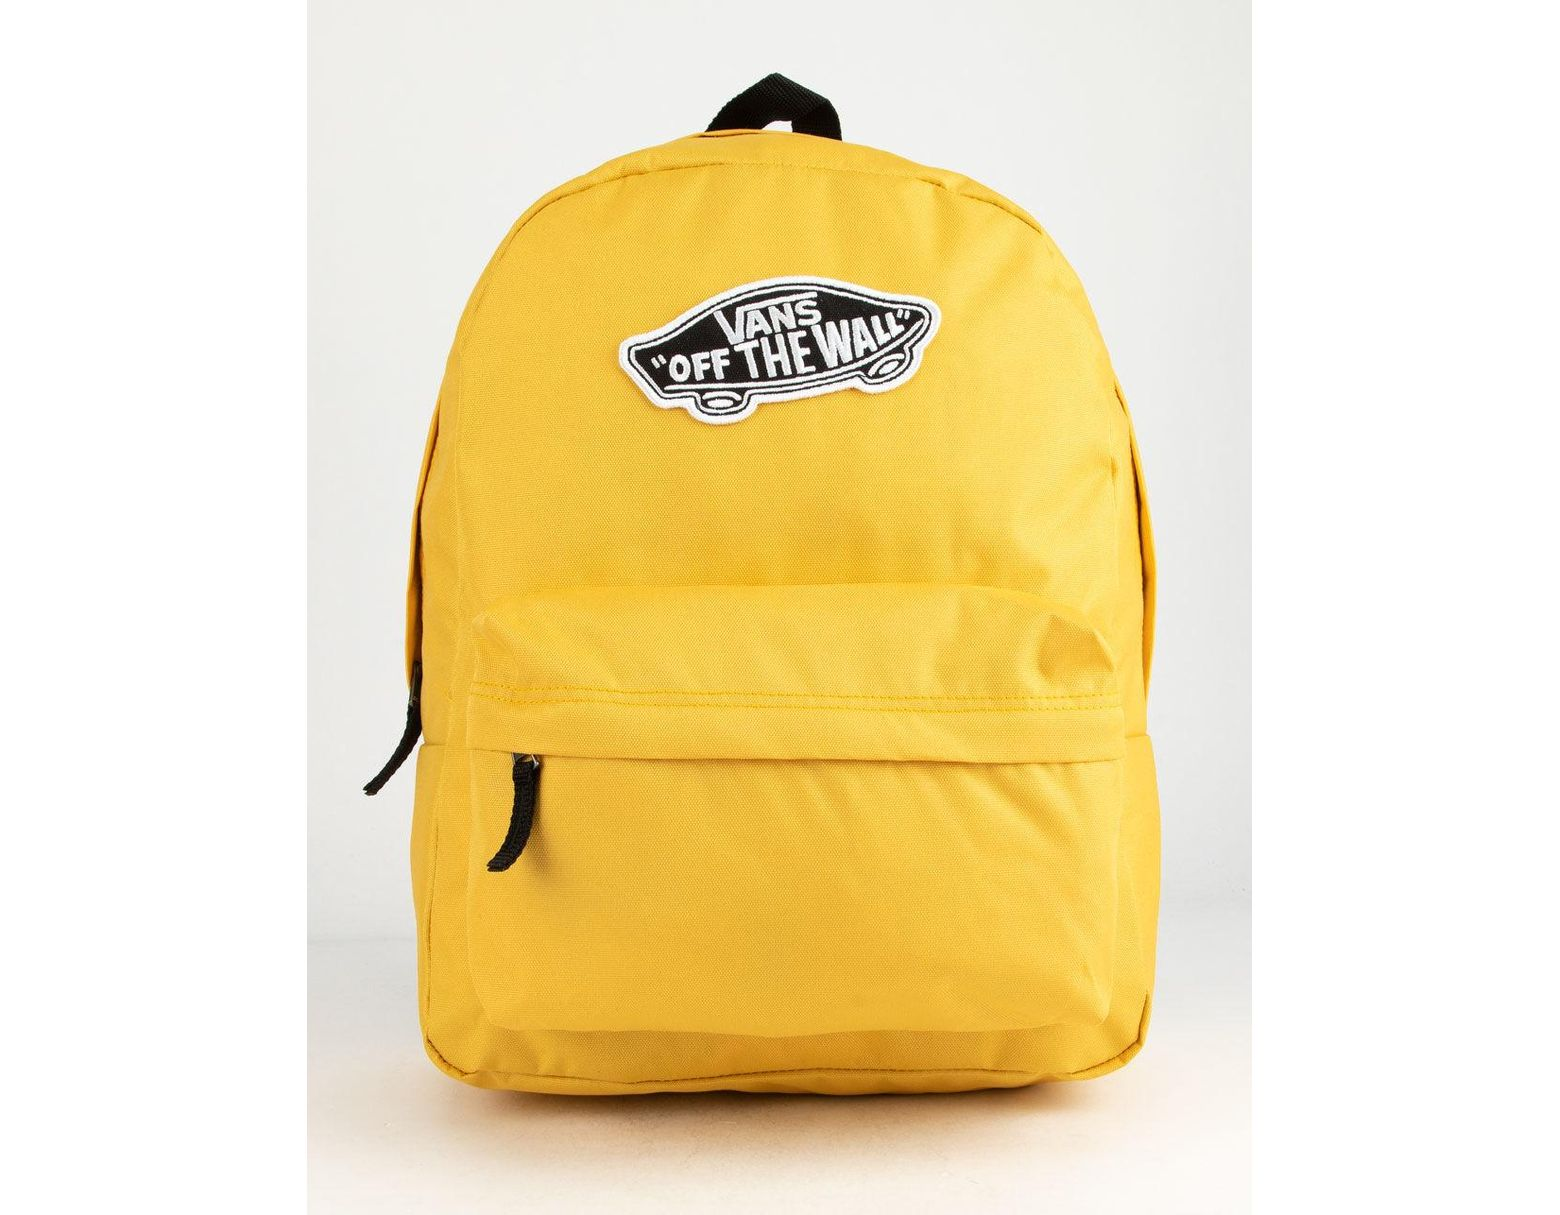 55e4b35e71d Vans Realm Classic Yolk Yellow Backpack in Yellow - Lyst